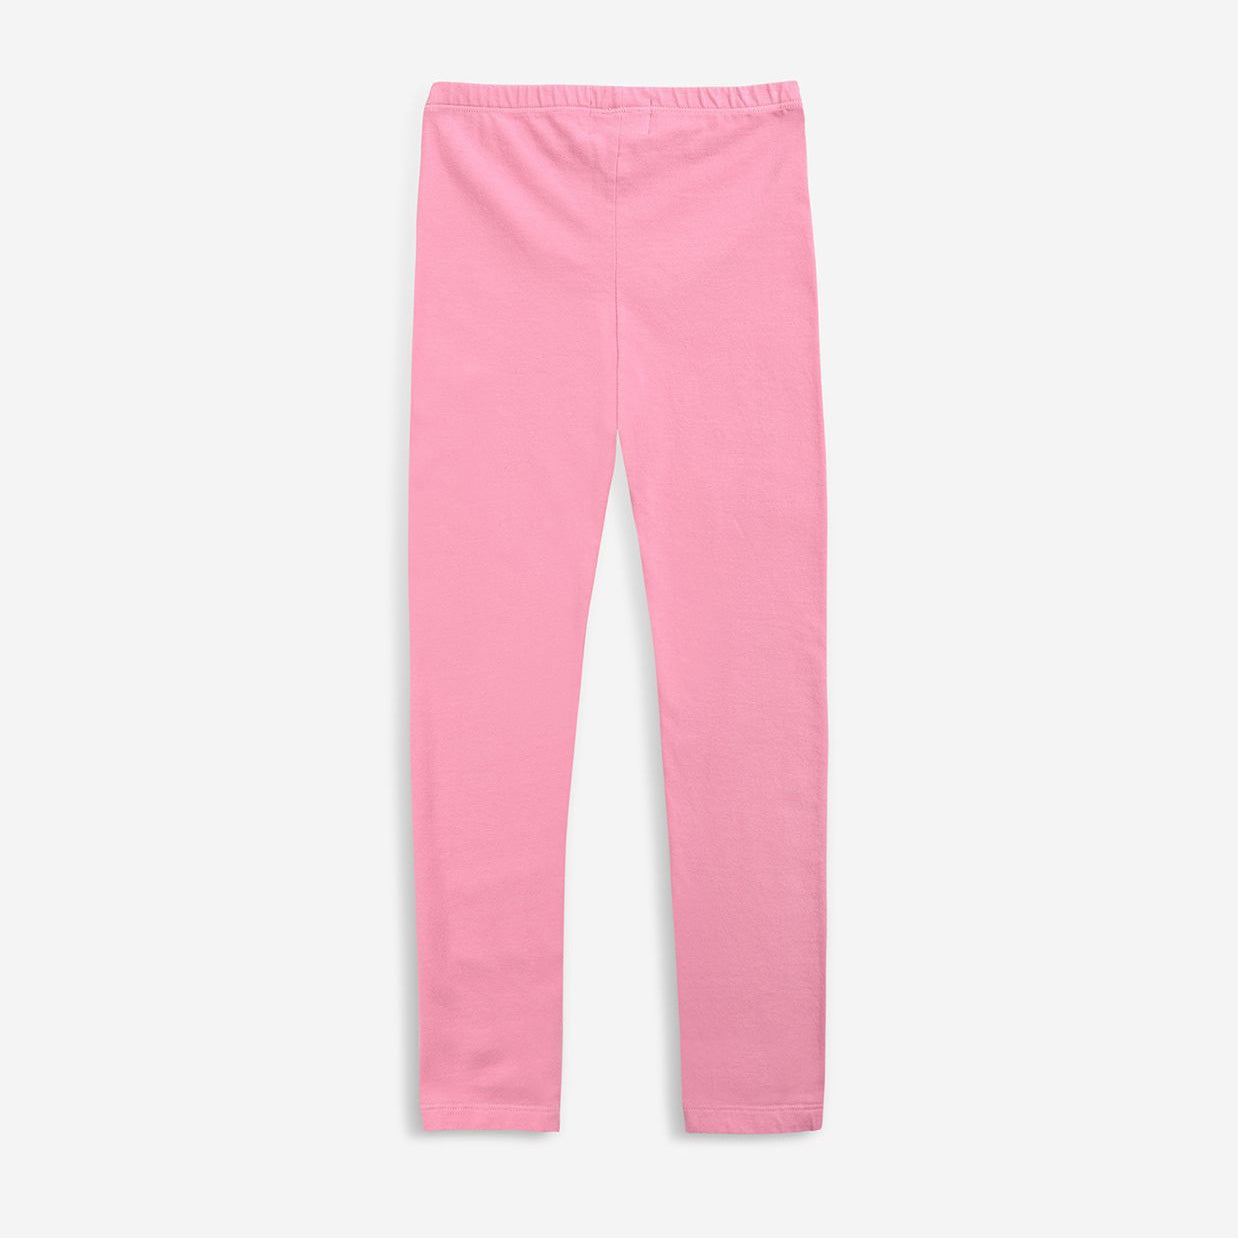 Bobo Choses pink leggings